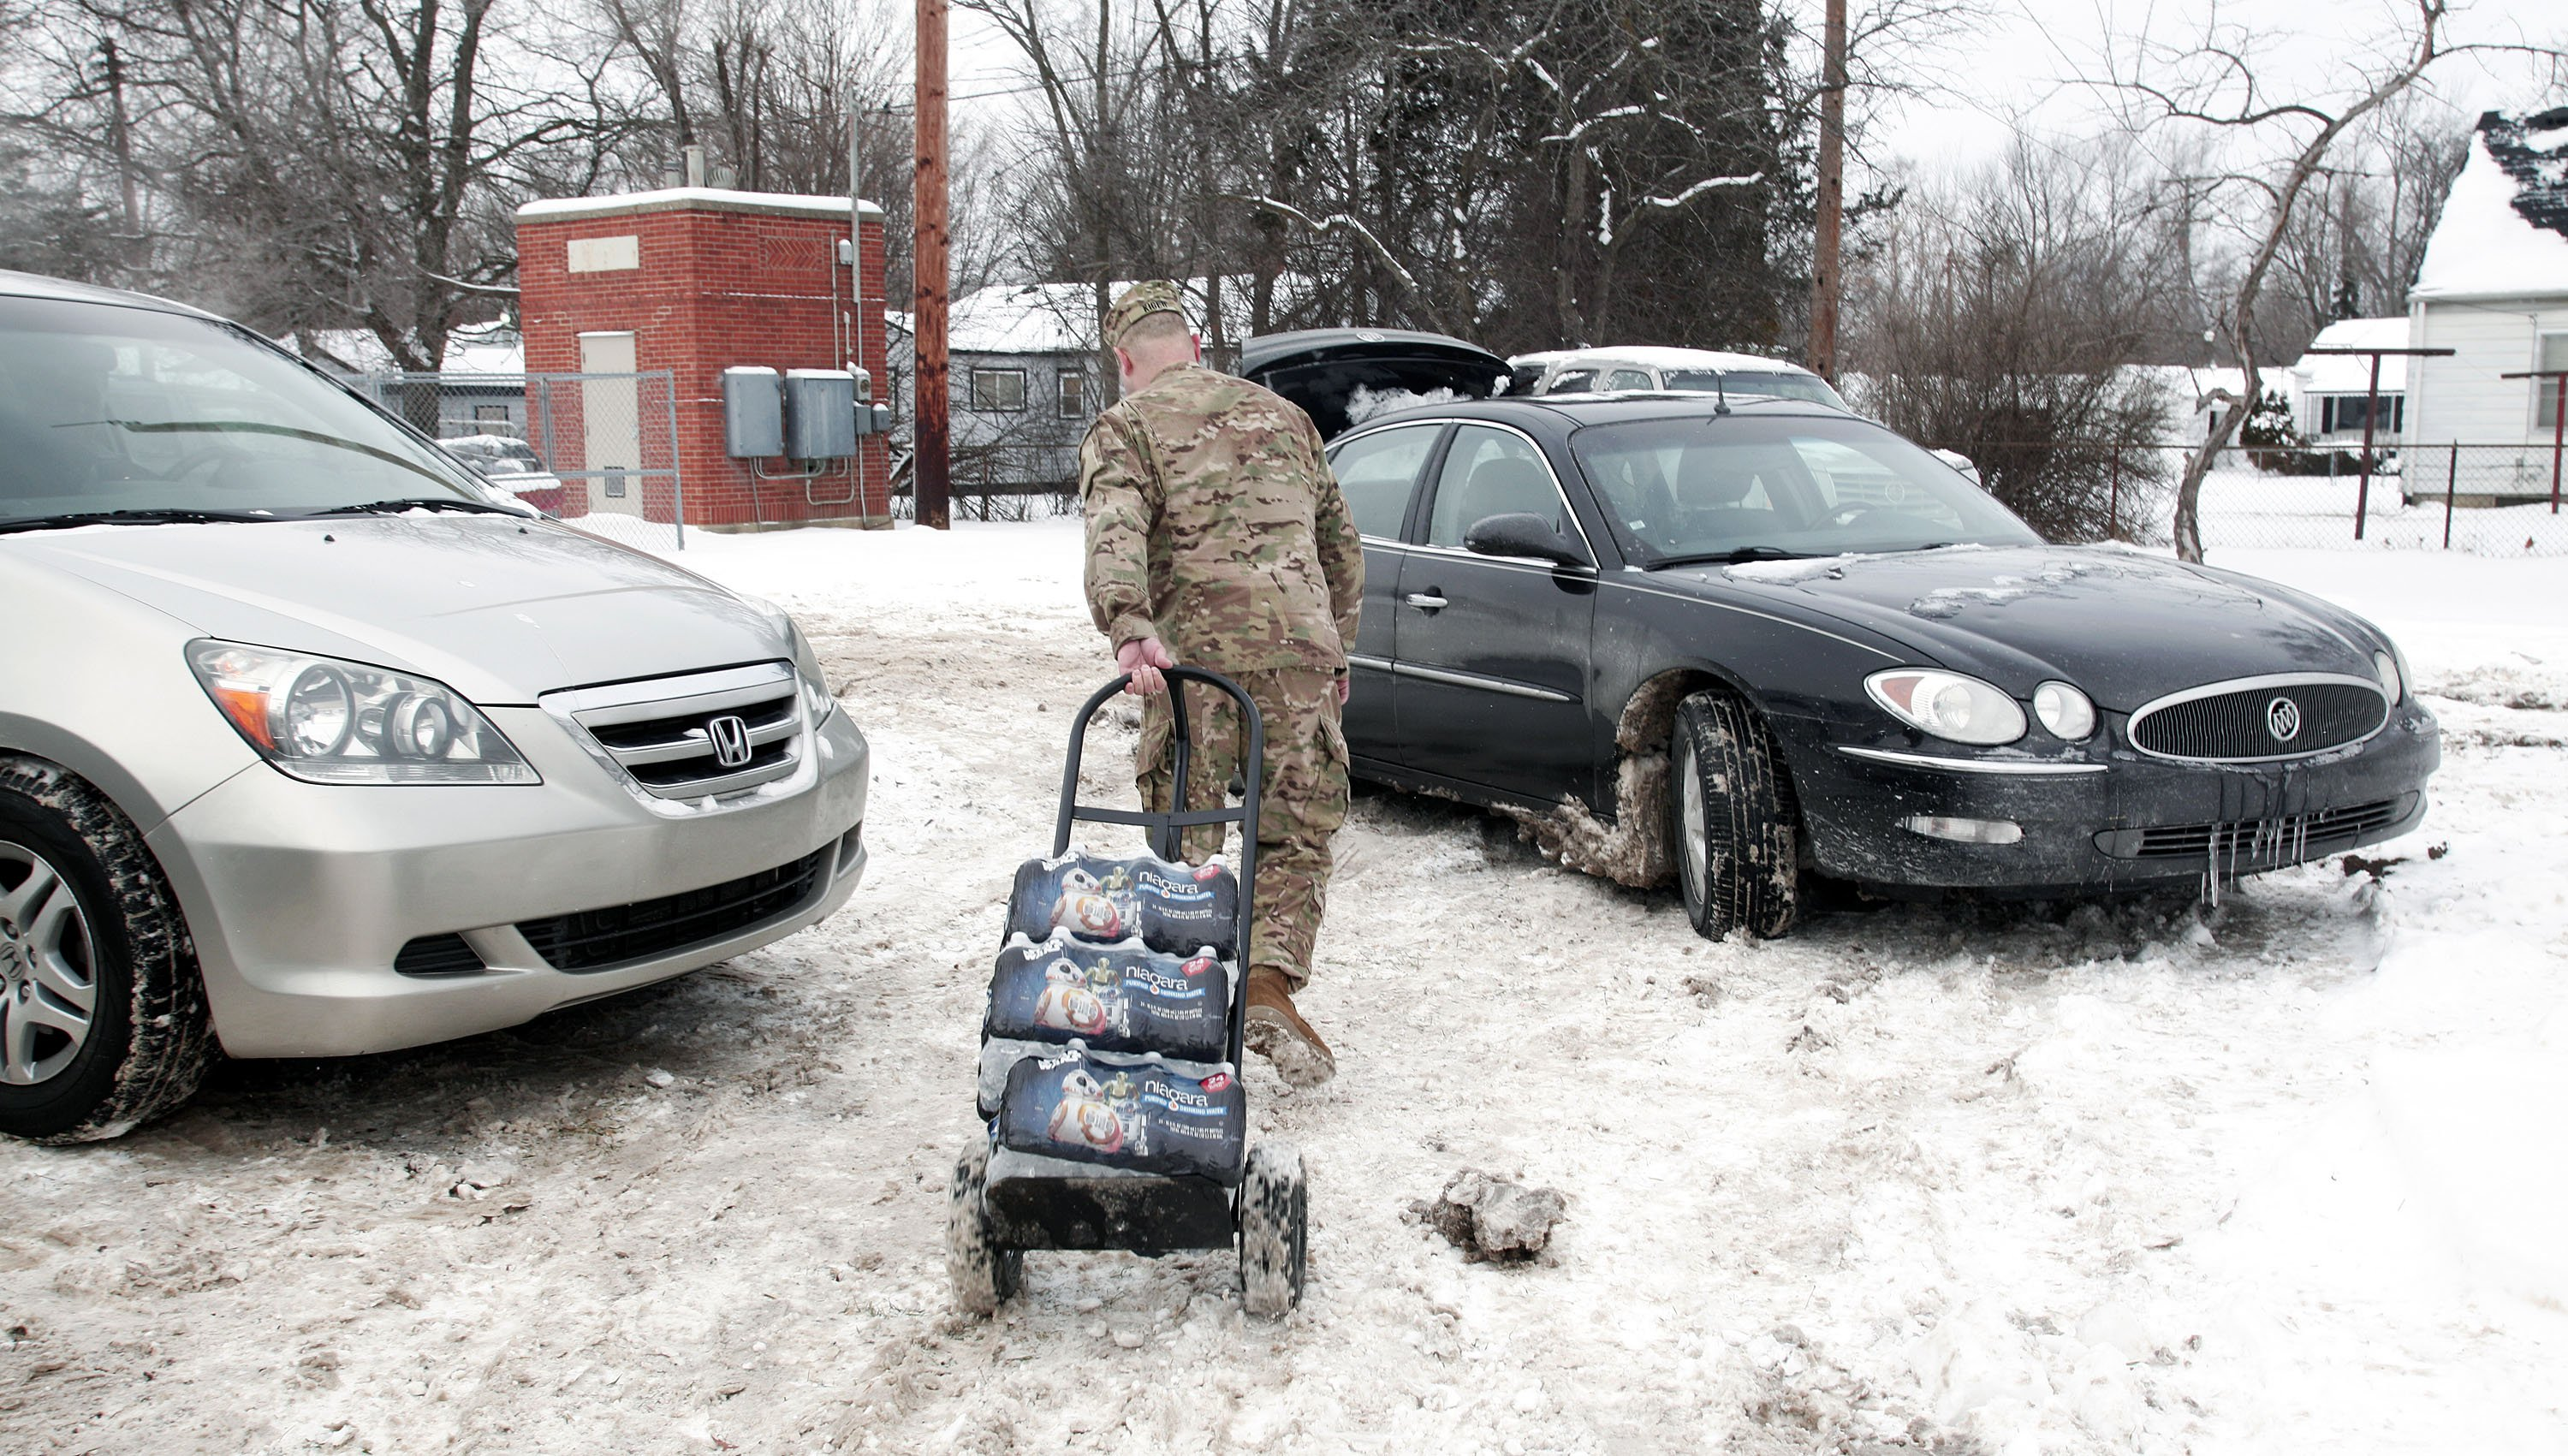 Michigan National Guard Staff Sergeant Steve Kiger of Beaverton, Michigan, helps Christine Brown of Flint, Michigan take bottled water out to her car after she received it at a Flint Fire Station on Jan 13, 2016 in Flint, Michigan.